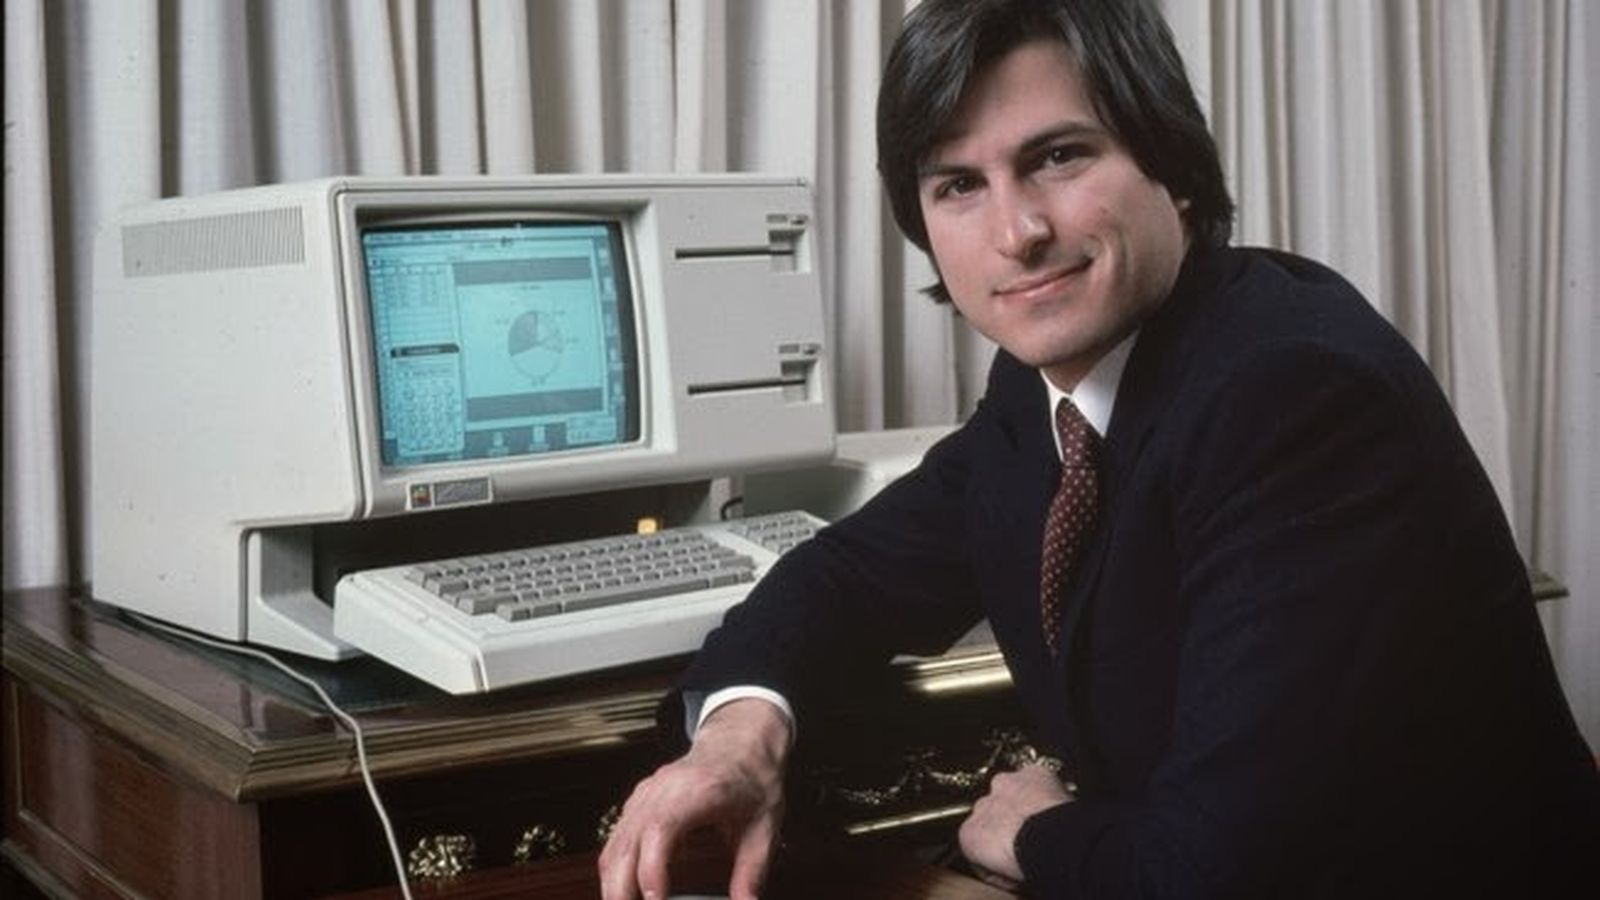 Jobs with the Lisa in 1983.